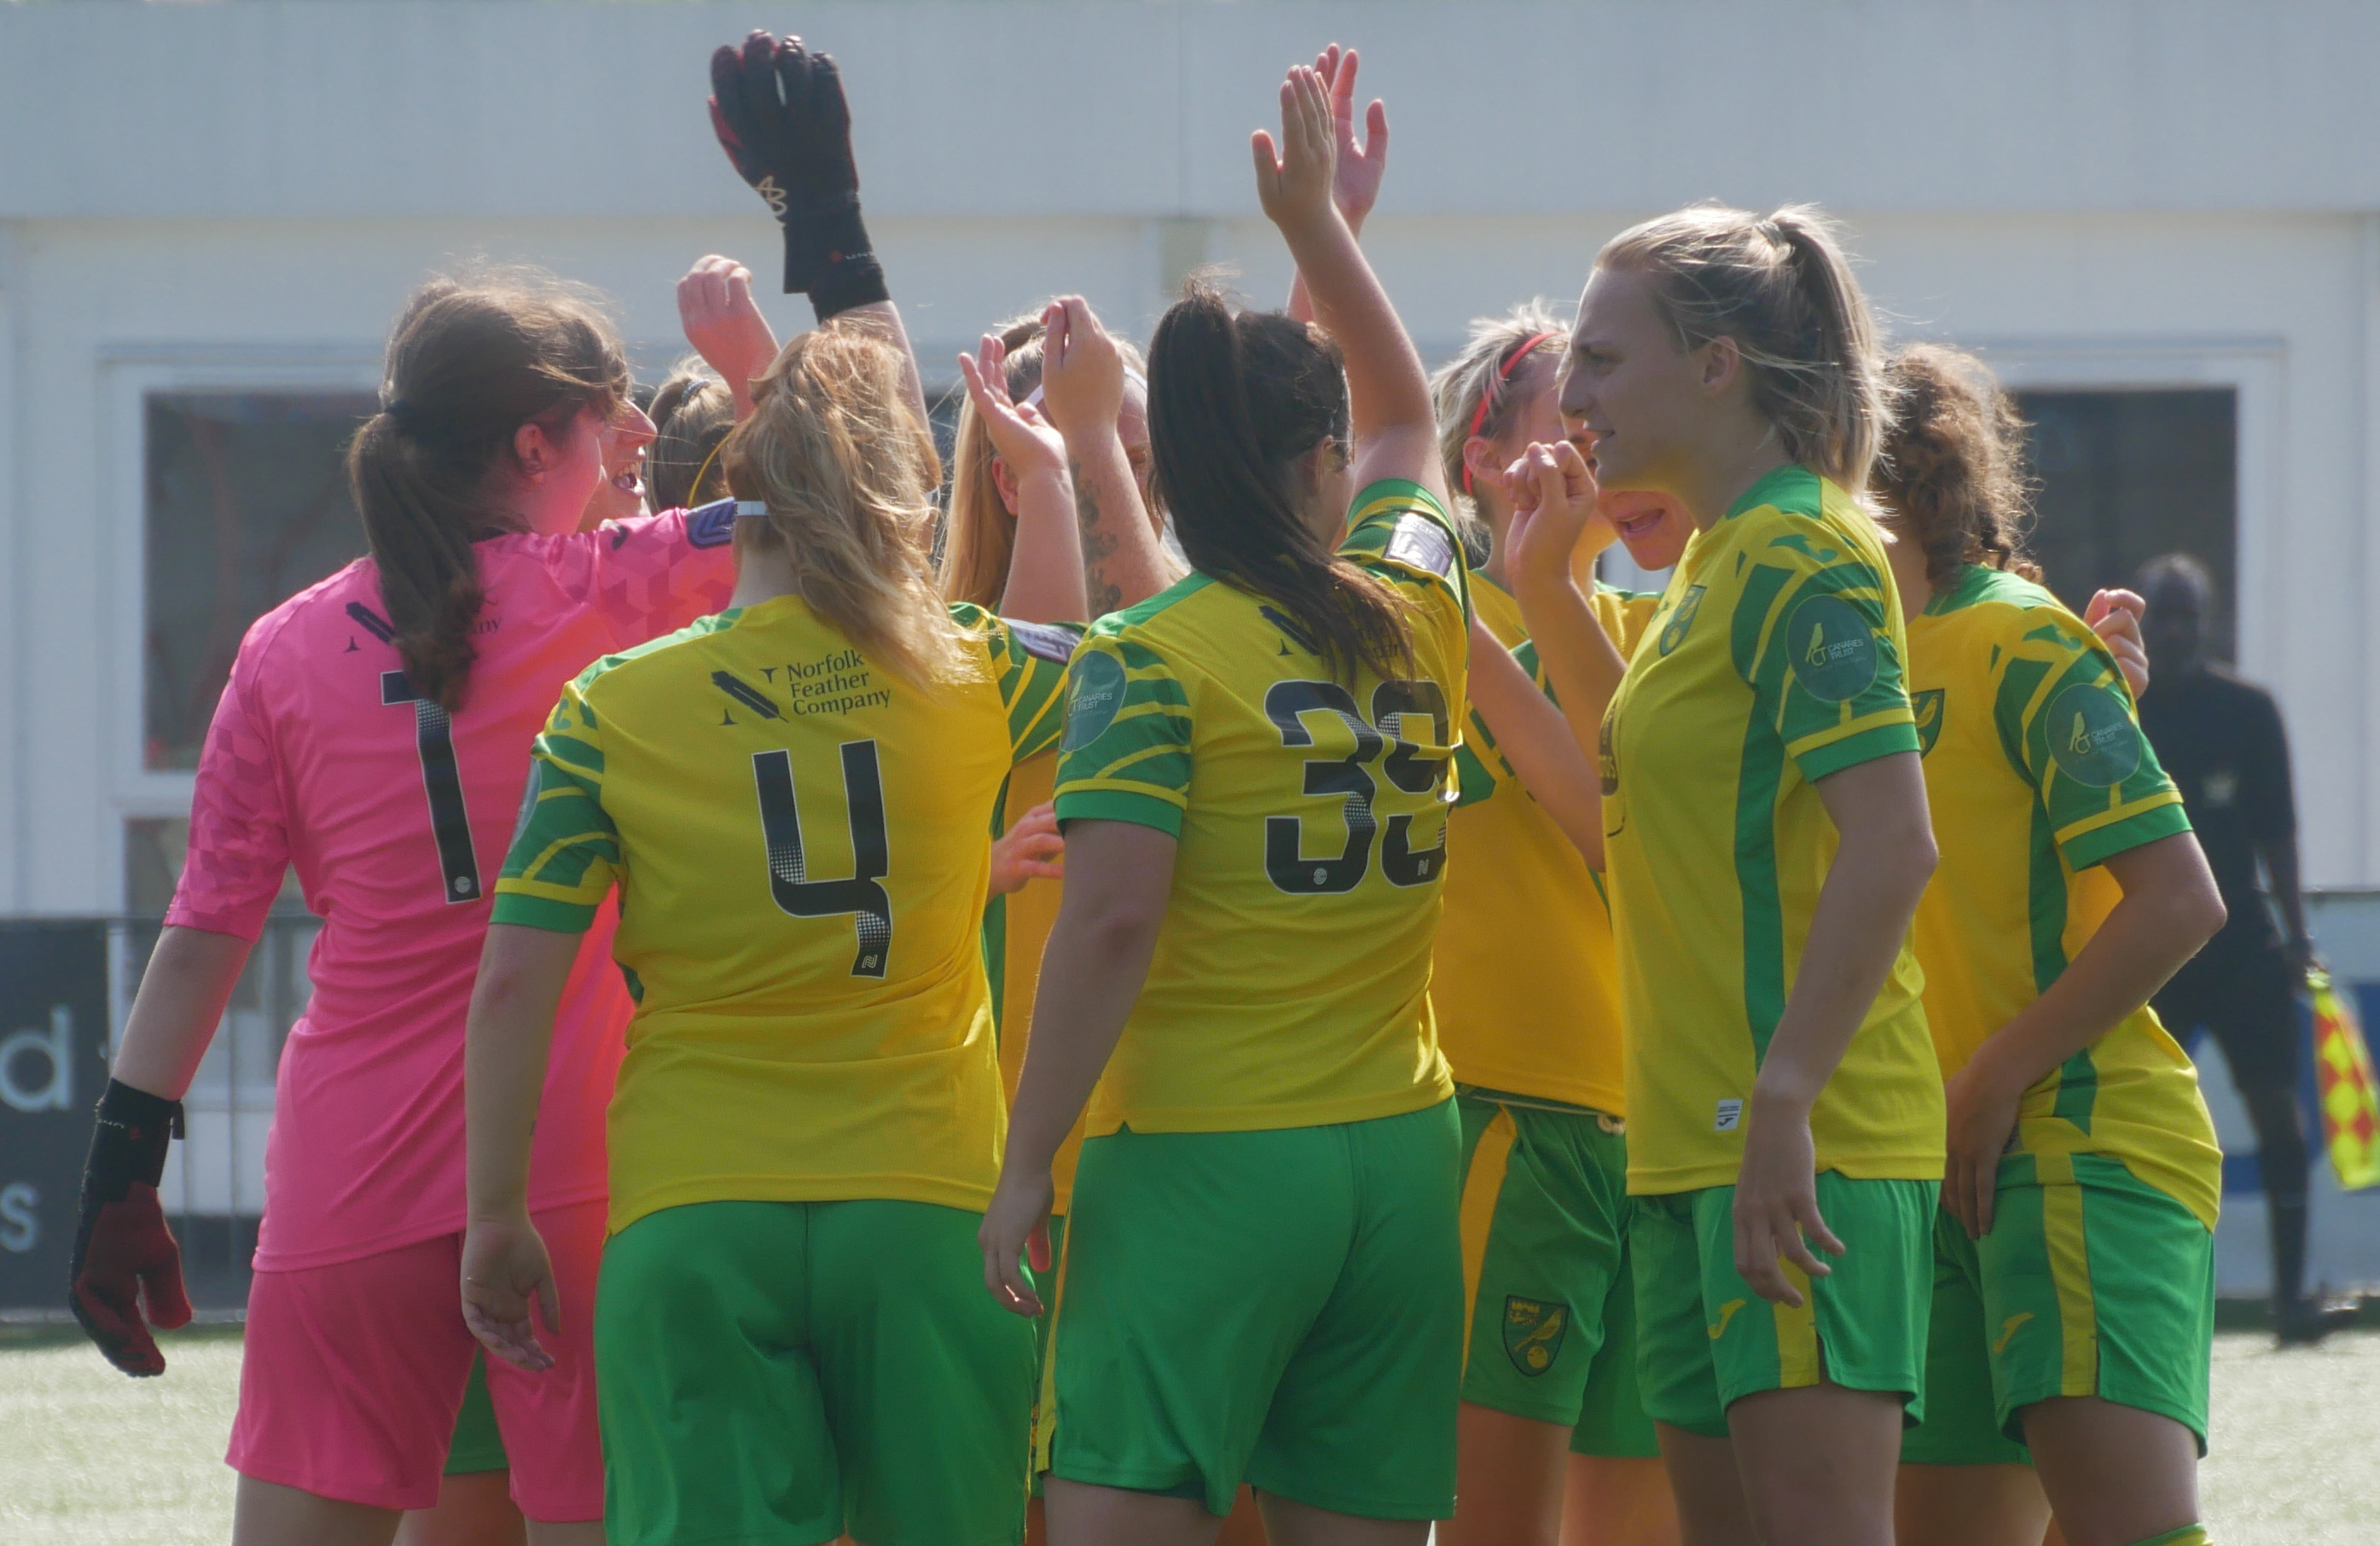 shaun-howes-pleased-with-determined-display-from-norwich-city-women